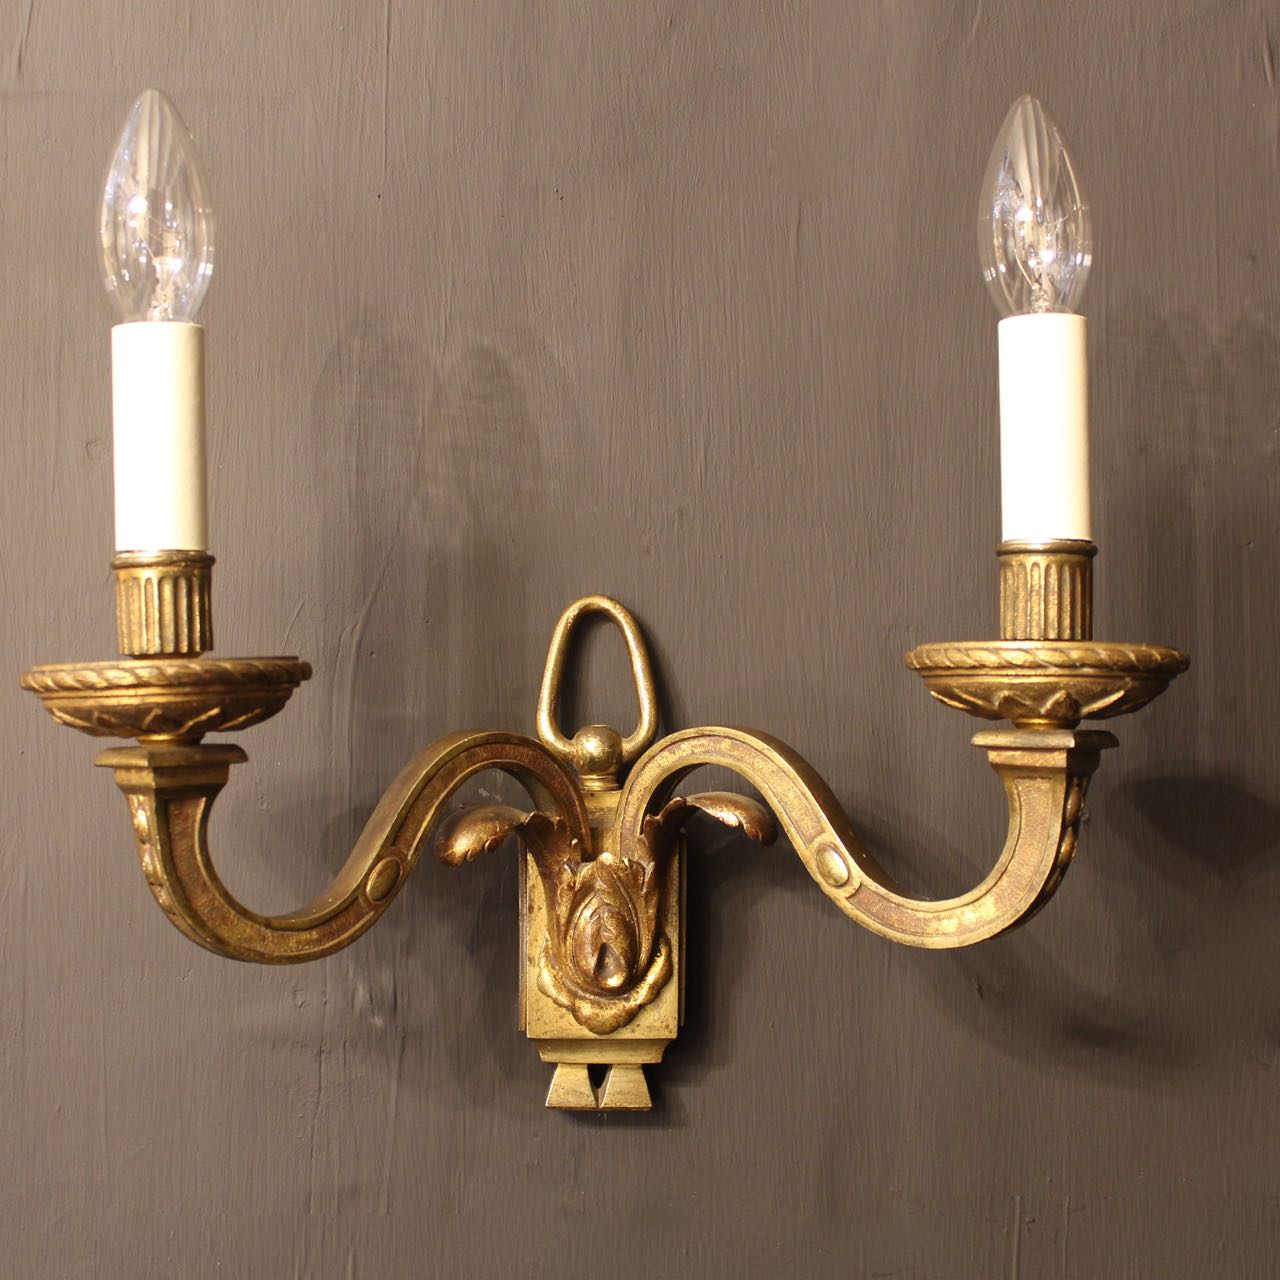 French Wall Lights: Zoom; French Pair Of Bronze Antique Wall Lights -okeeffe-antiques-OKA02005D_main.jpg,Lighting